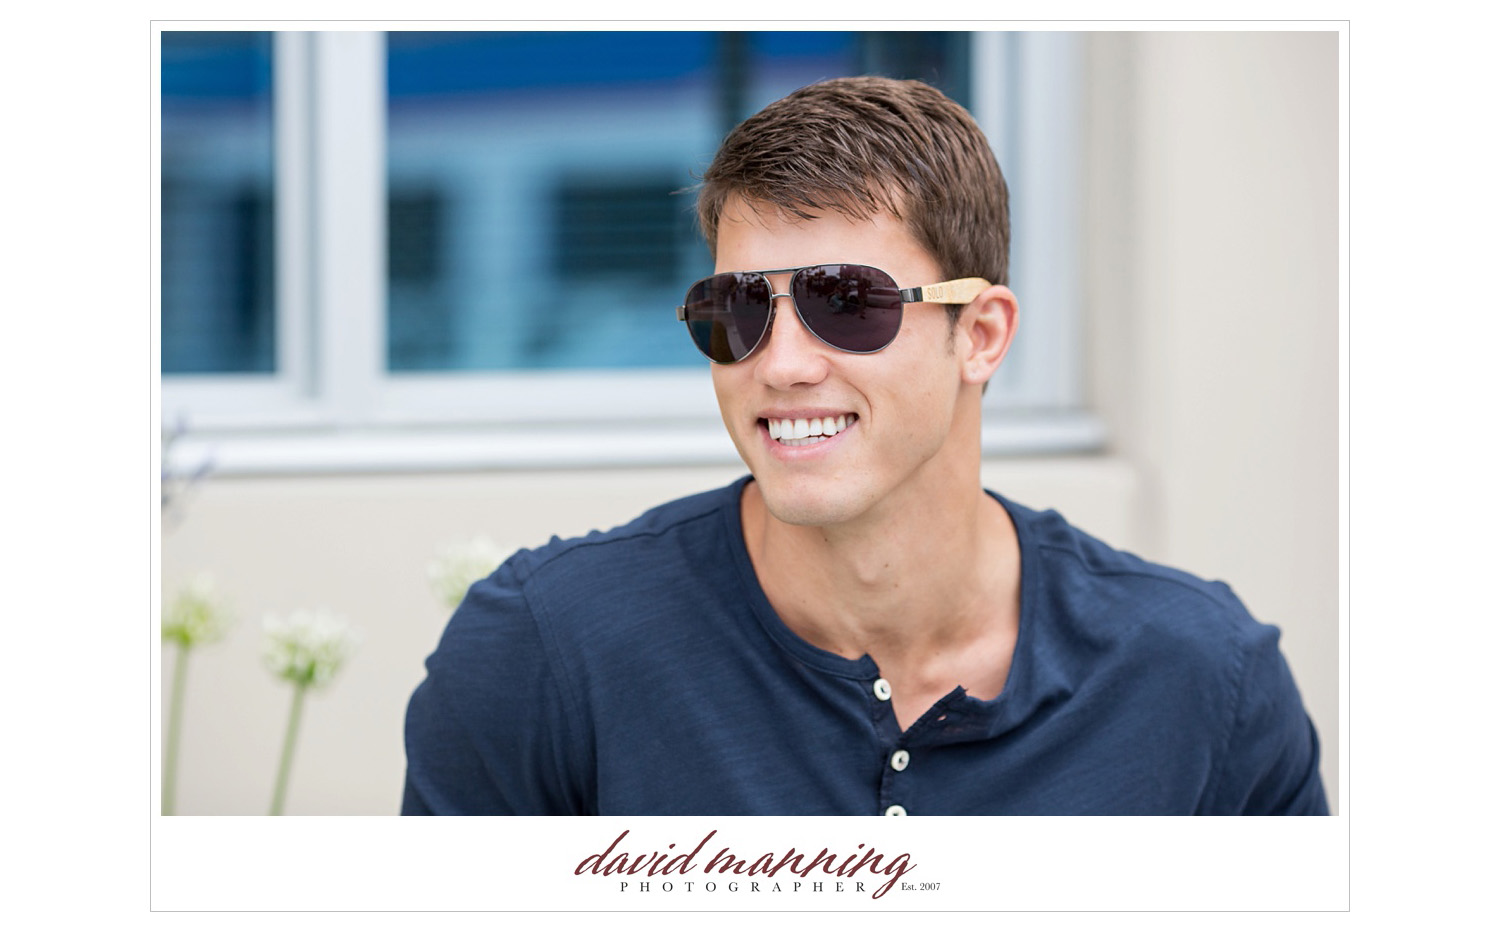 SOLO-Eyewear--Commercial-Editorial-Photos-David-Manning-Photographers-0012.jpg